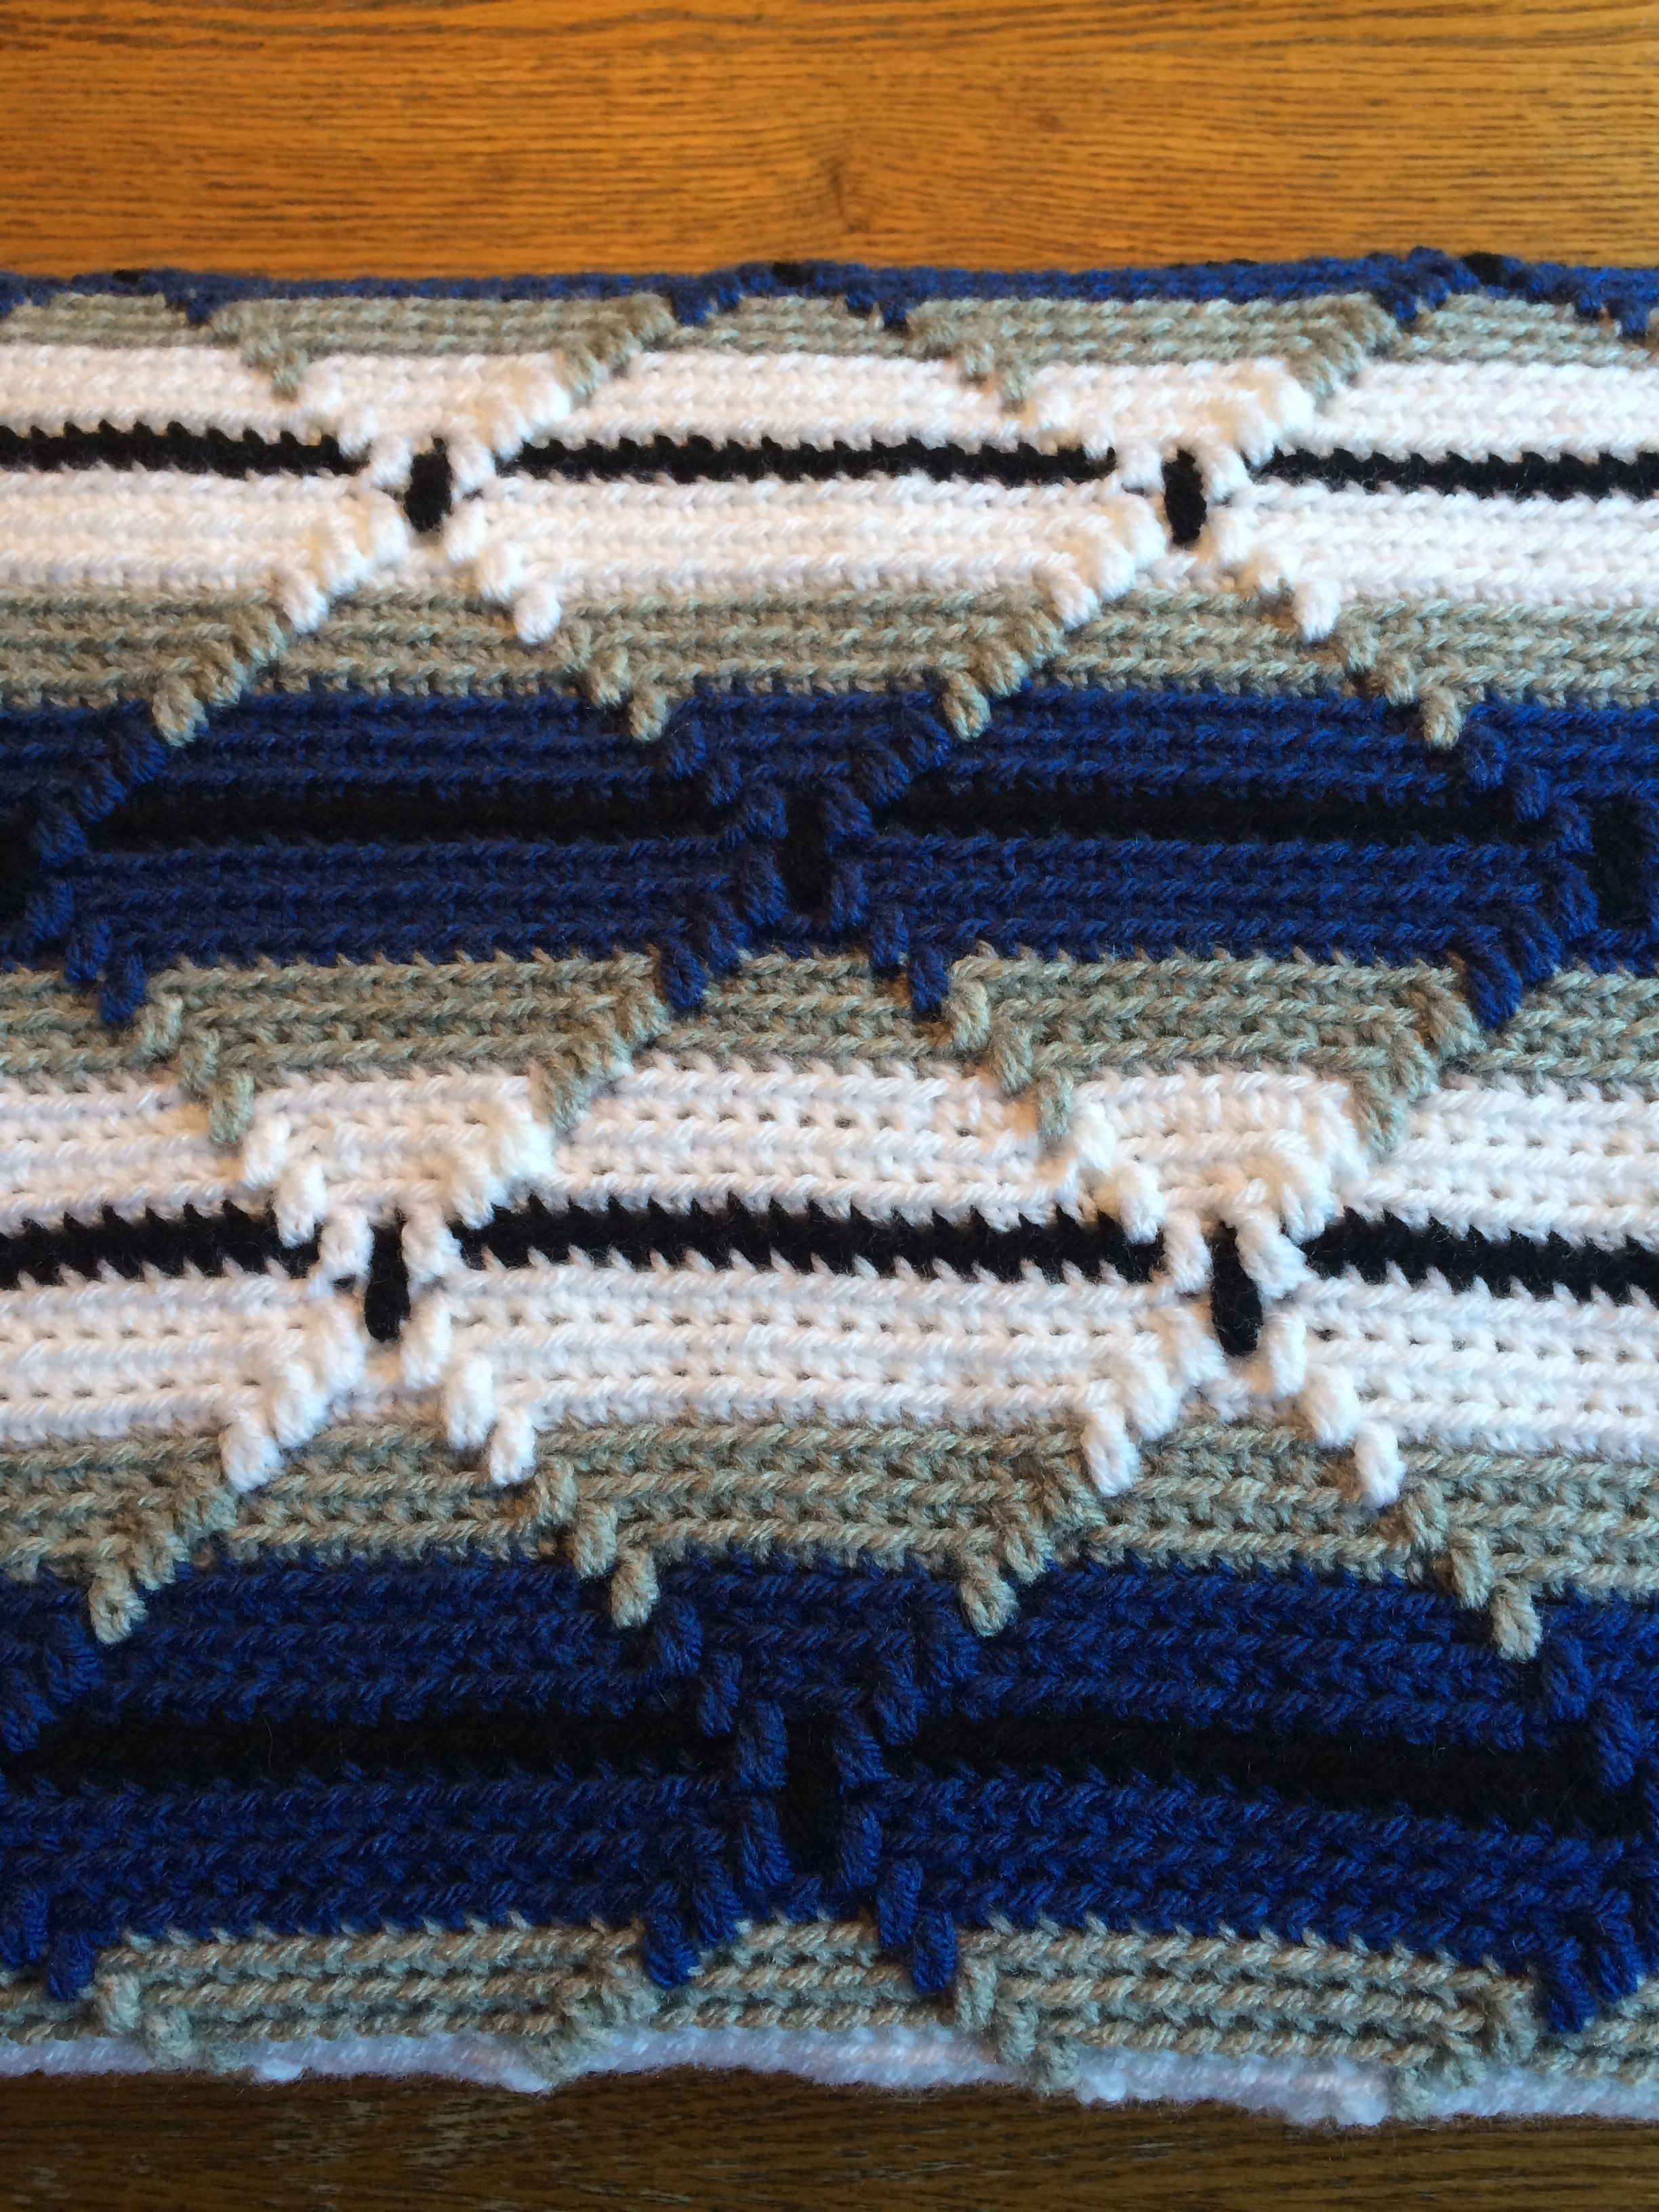 Navajo | Crochet blanket patterns | Pinterest | Navajo, Crochet ...